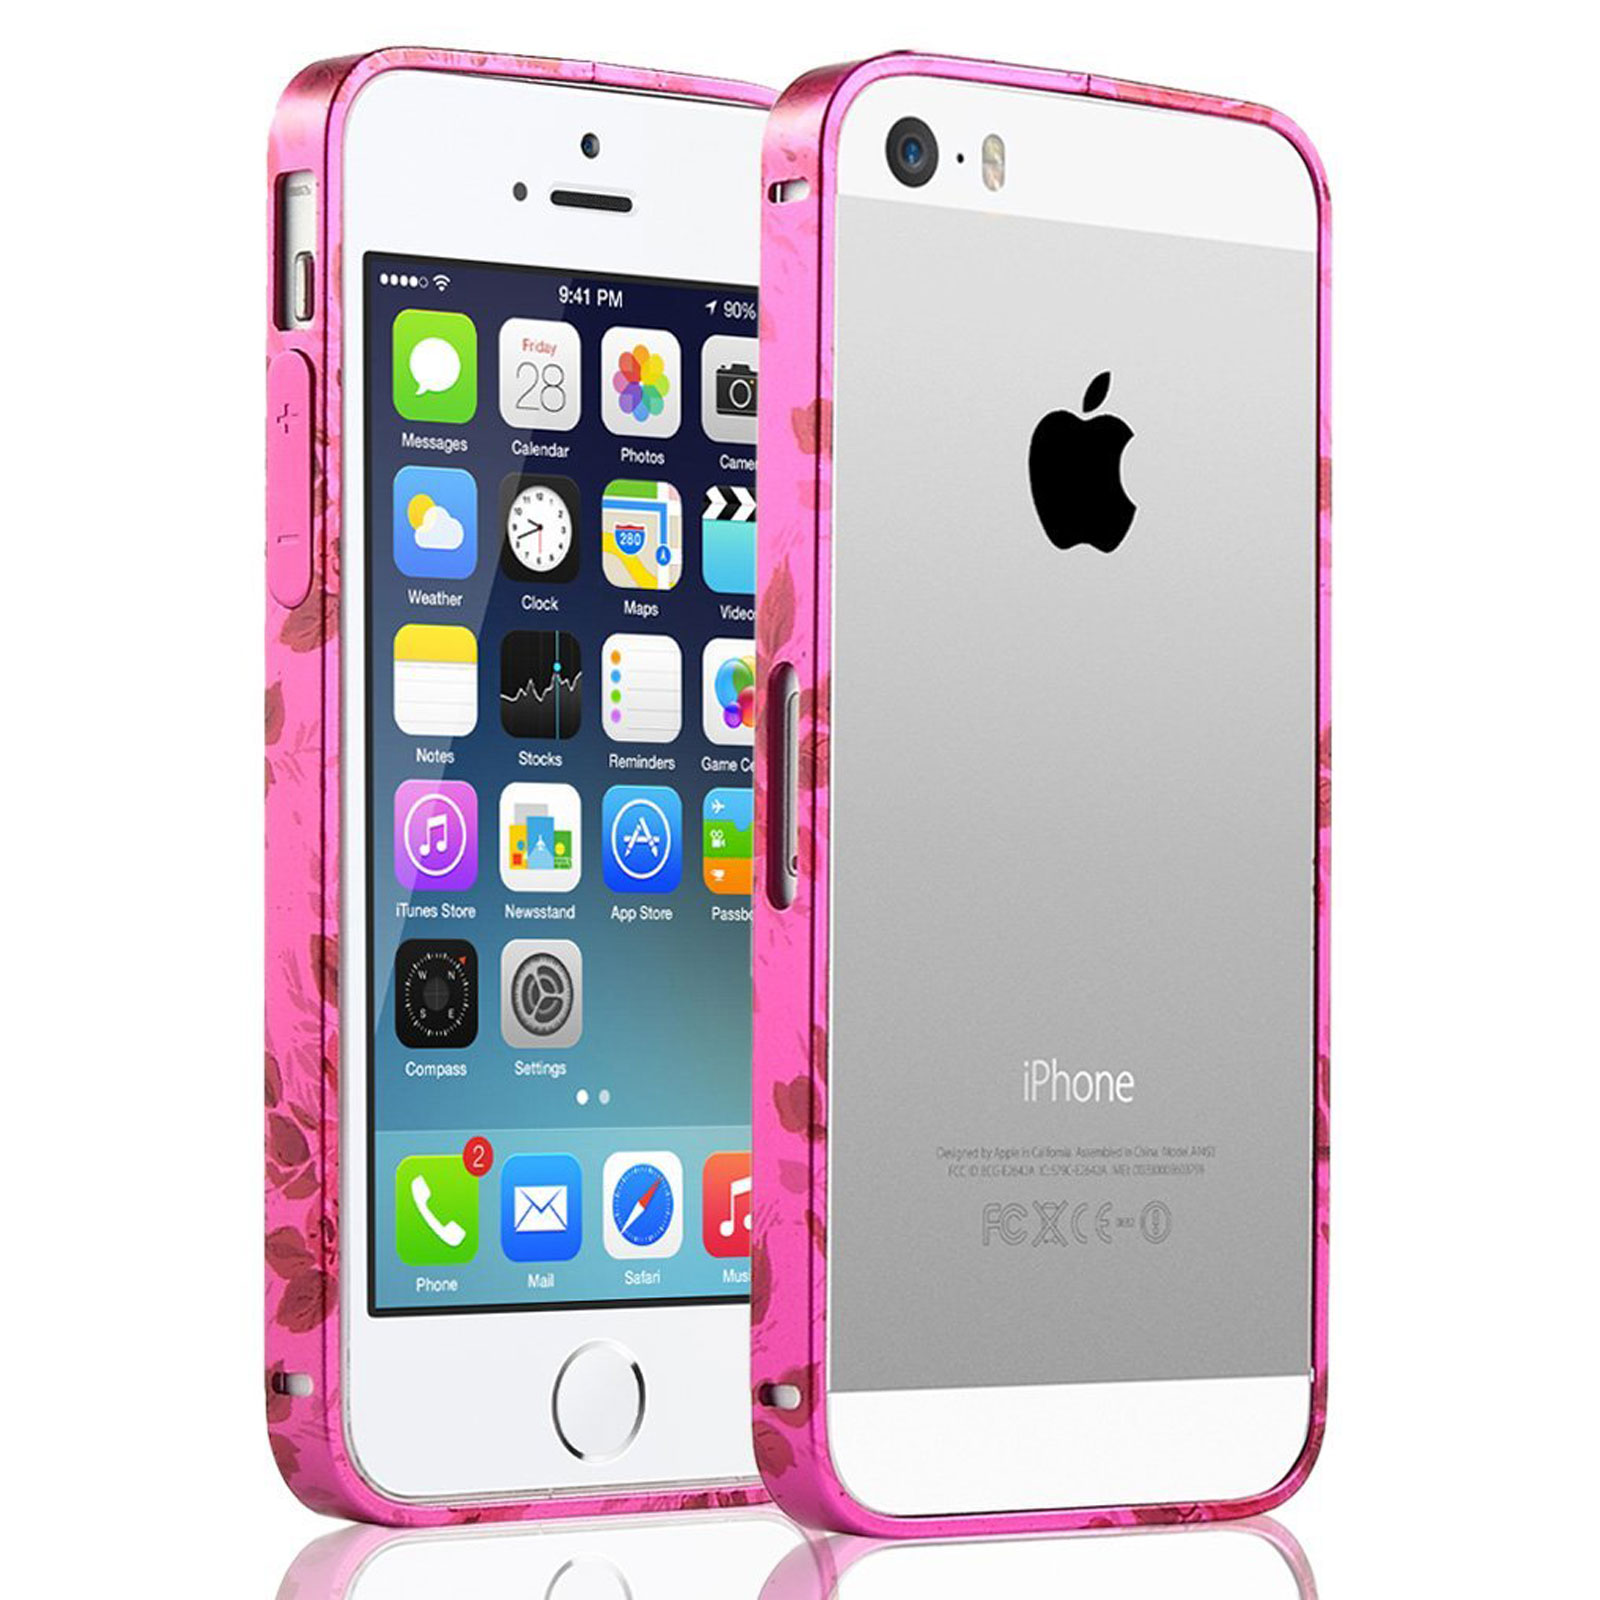 iphone 5s walmart ultra slim metallic frame bumper aluminum skin cover 11268